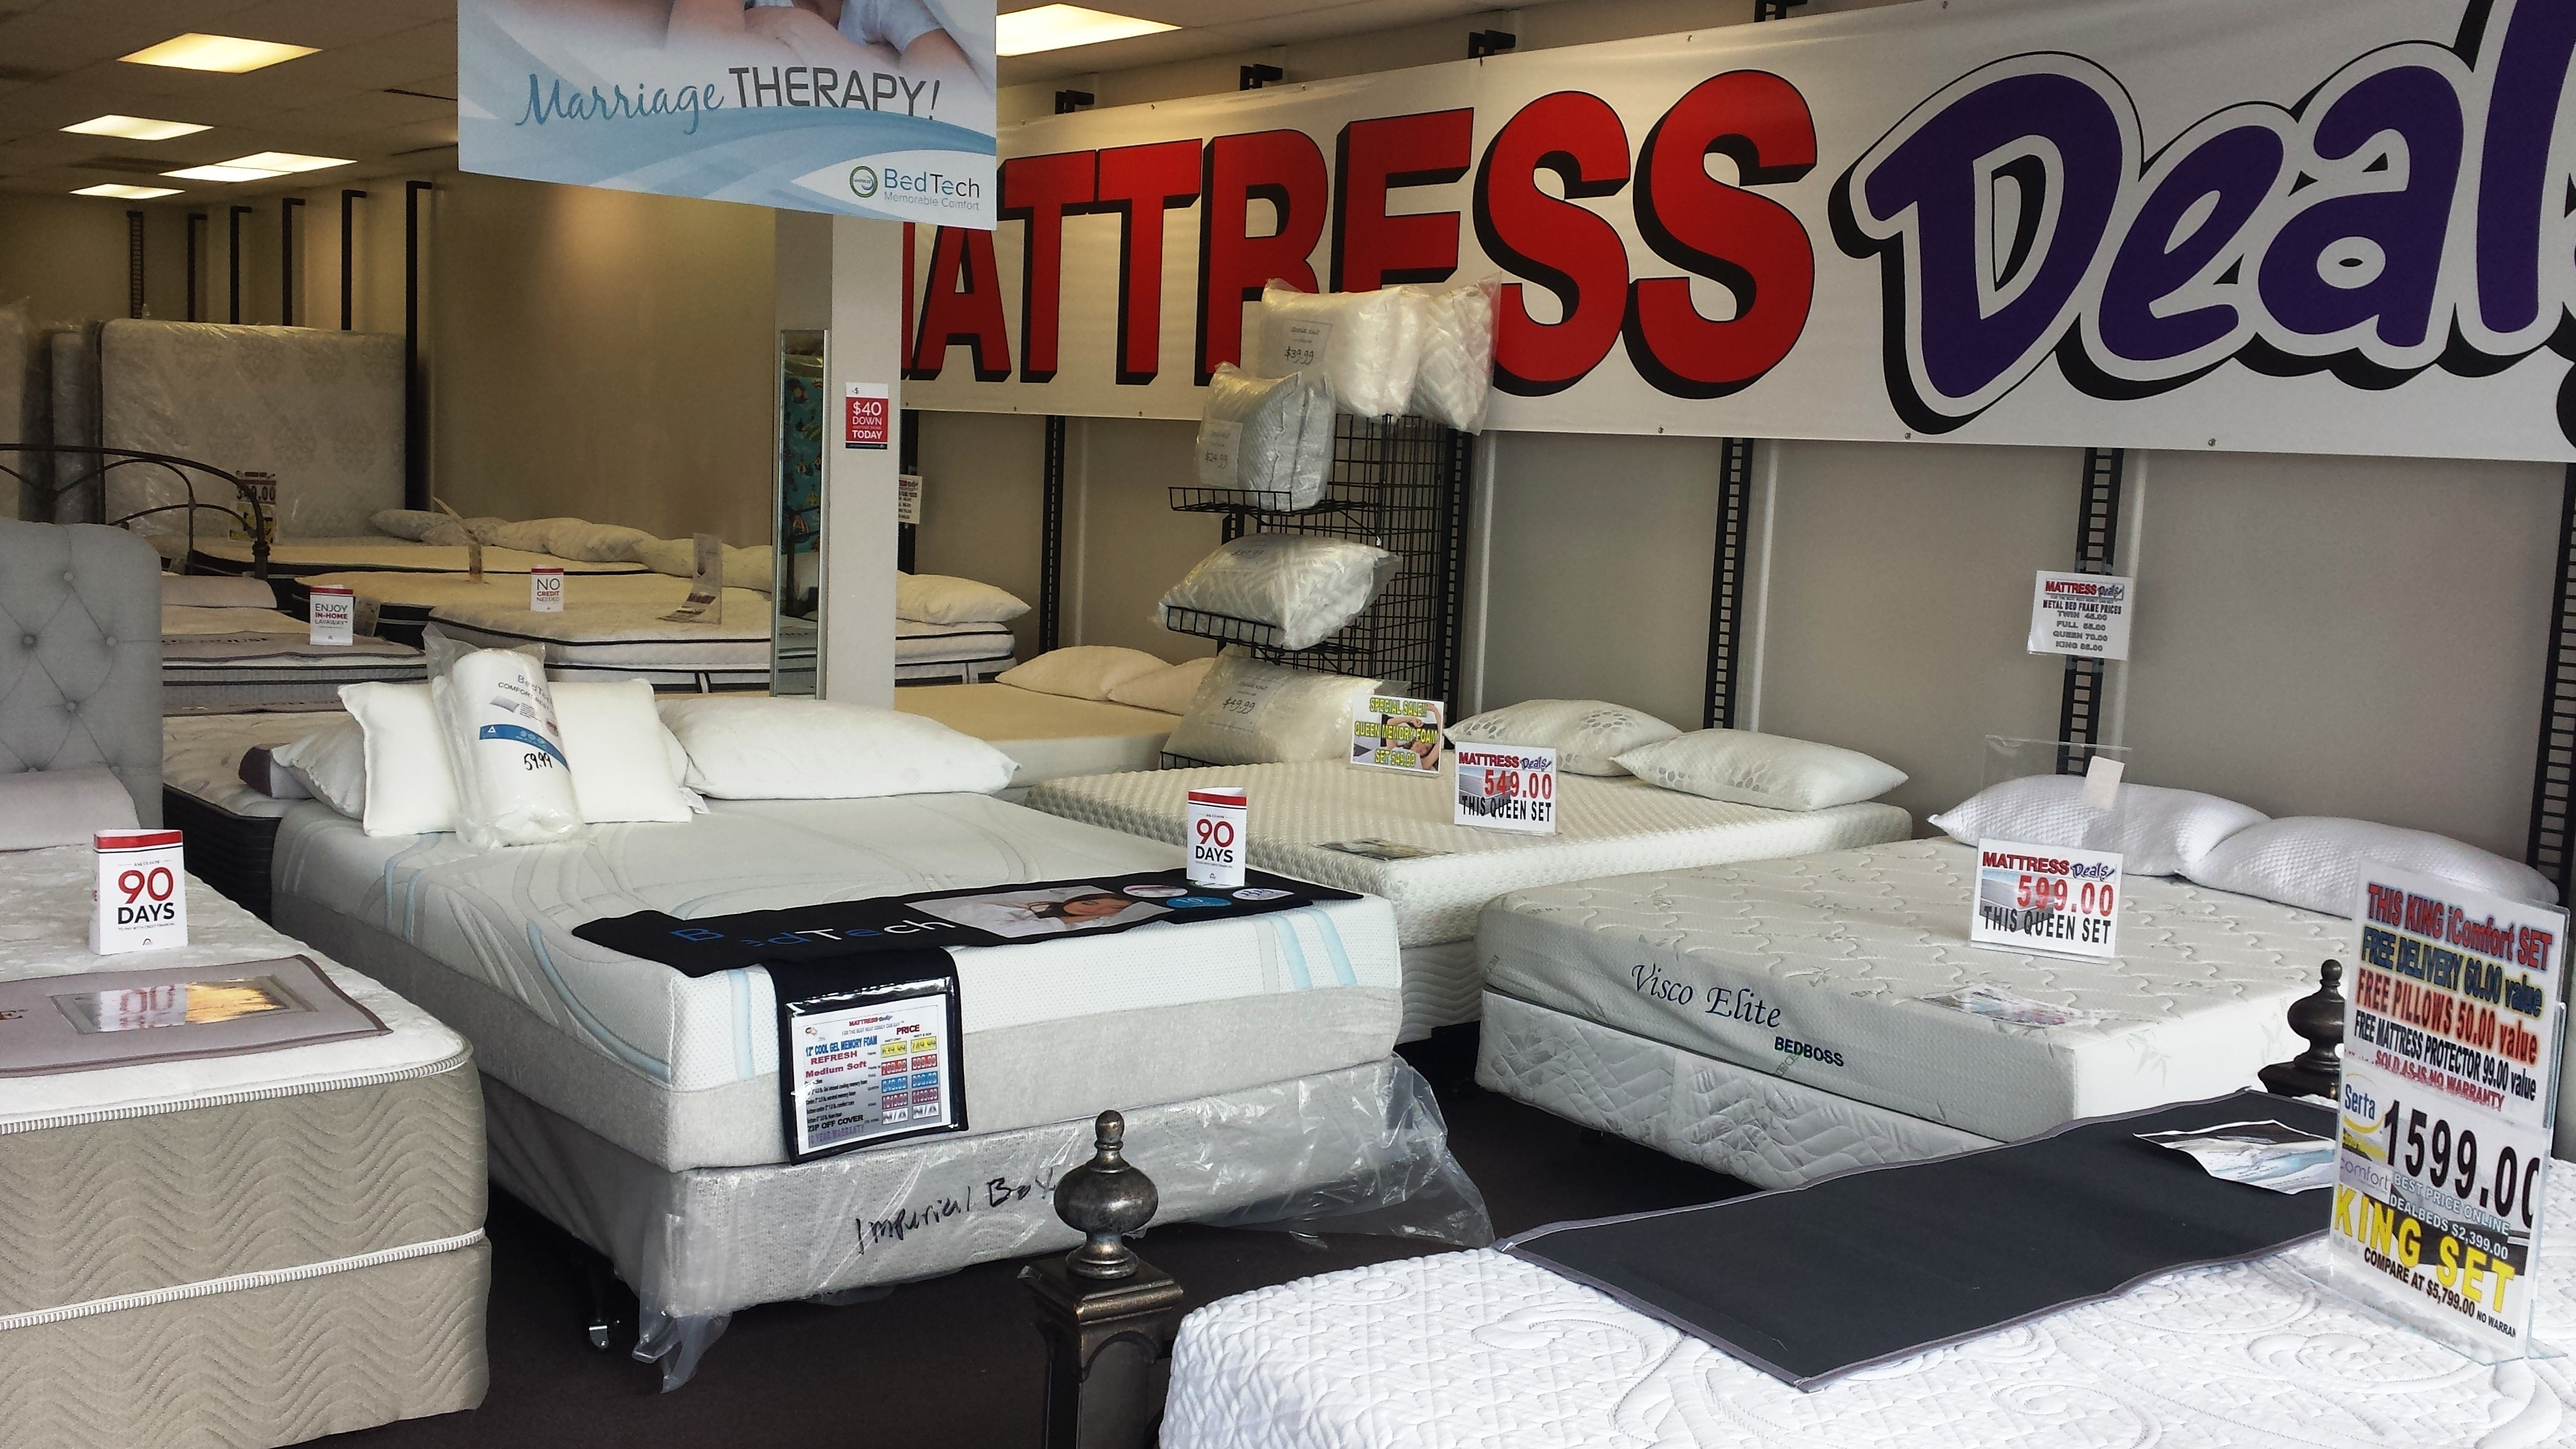 Mattress Deals image 19